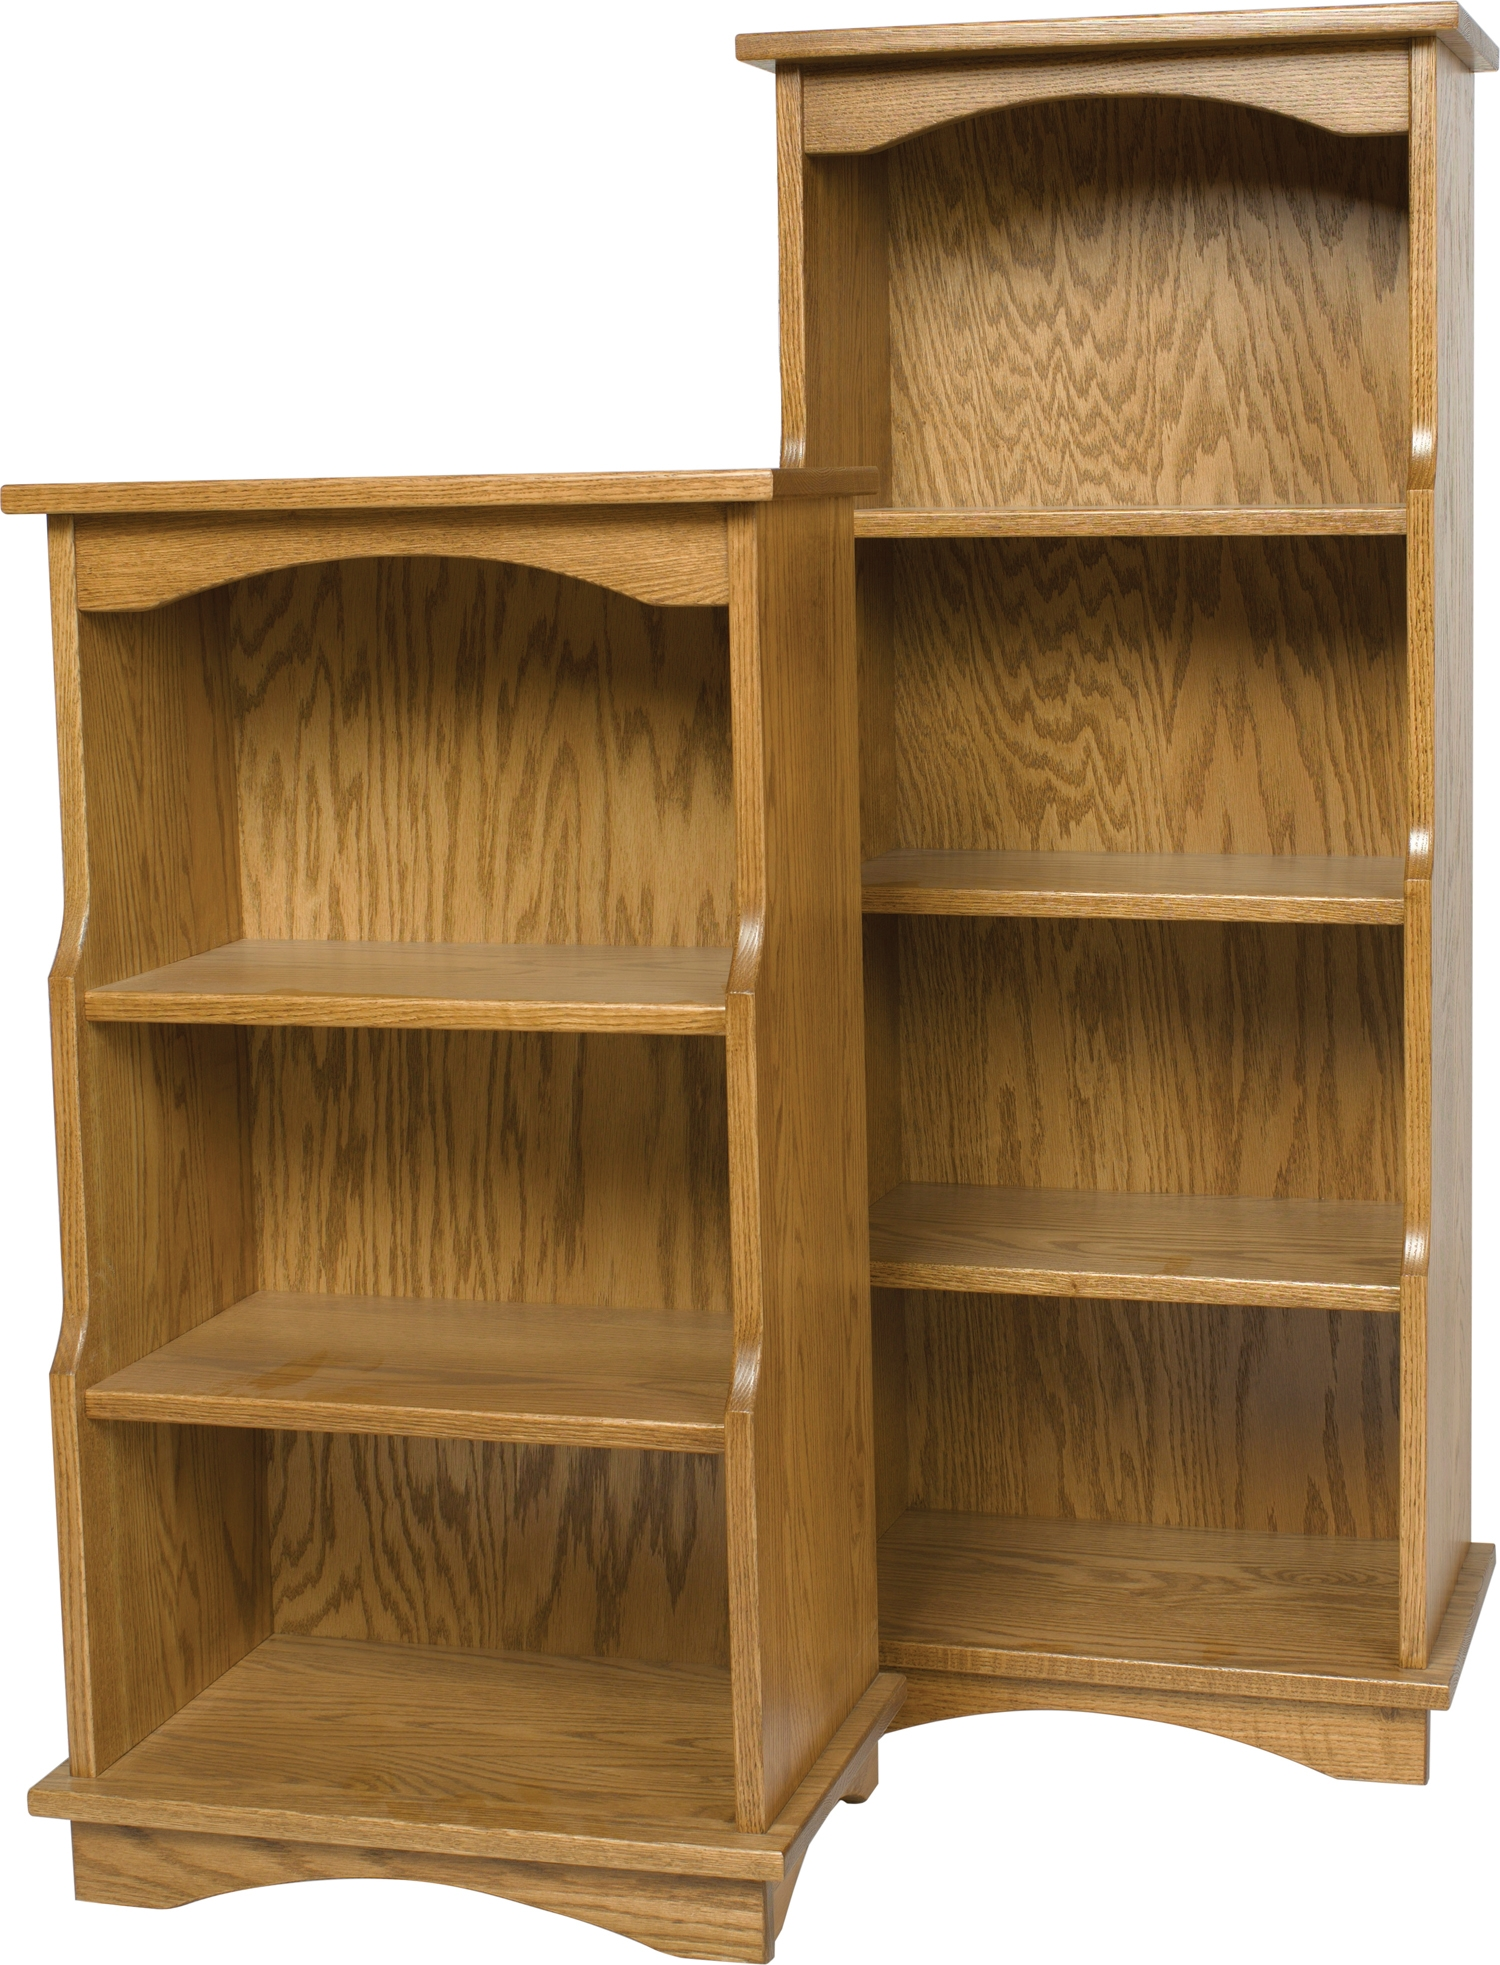 Carlisle Oak Bookcases And Cabinets Page 1 Pertaining To Oak Bookshelves (#2 of 15)